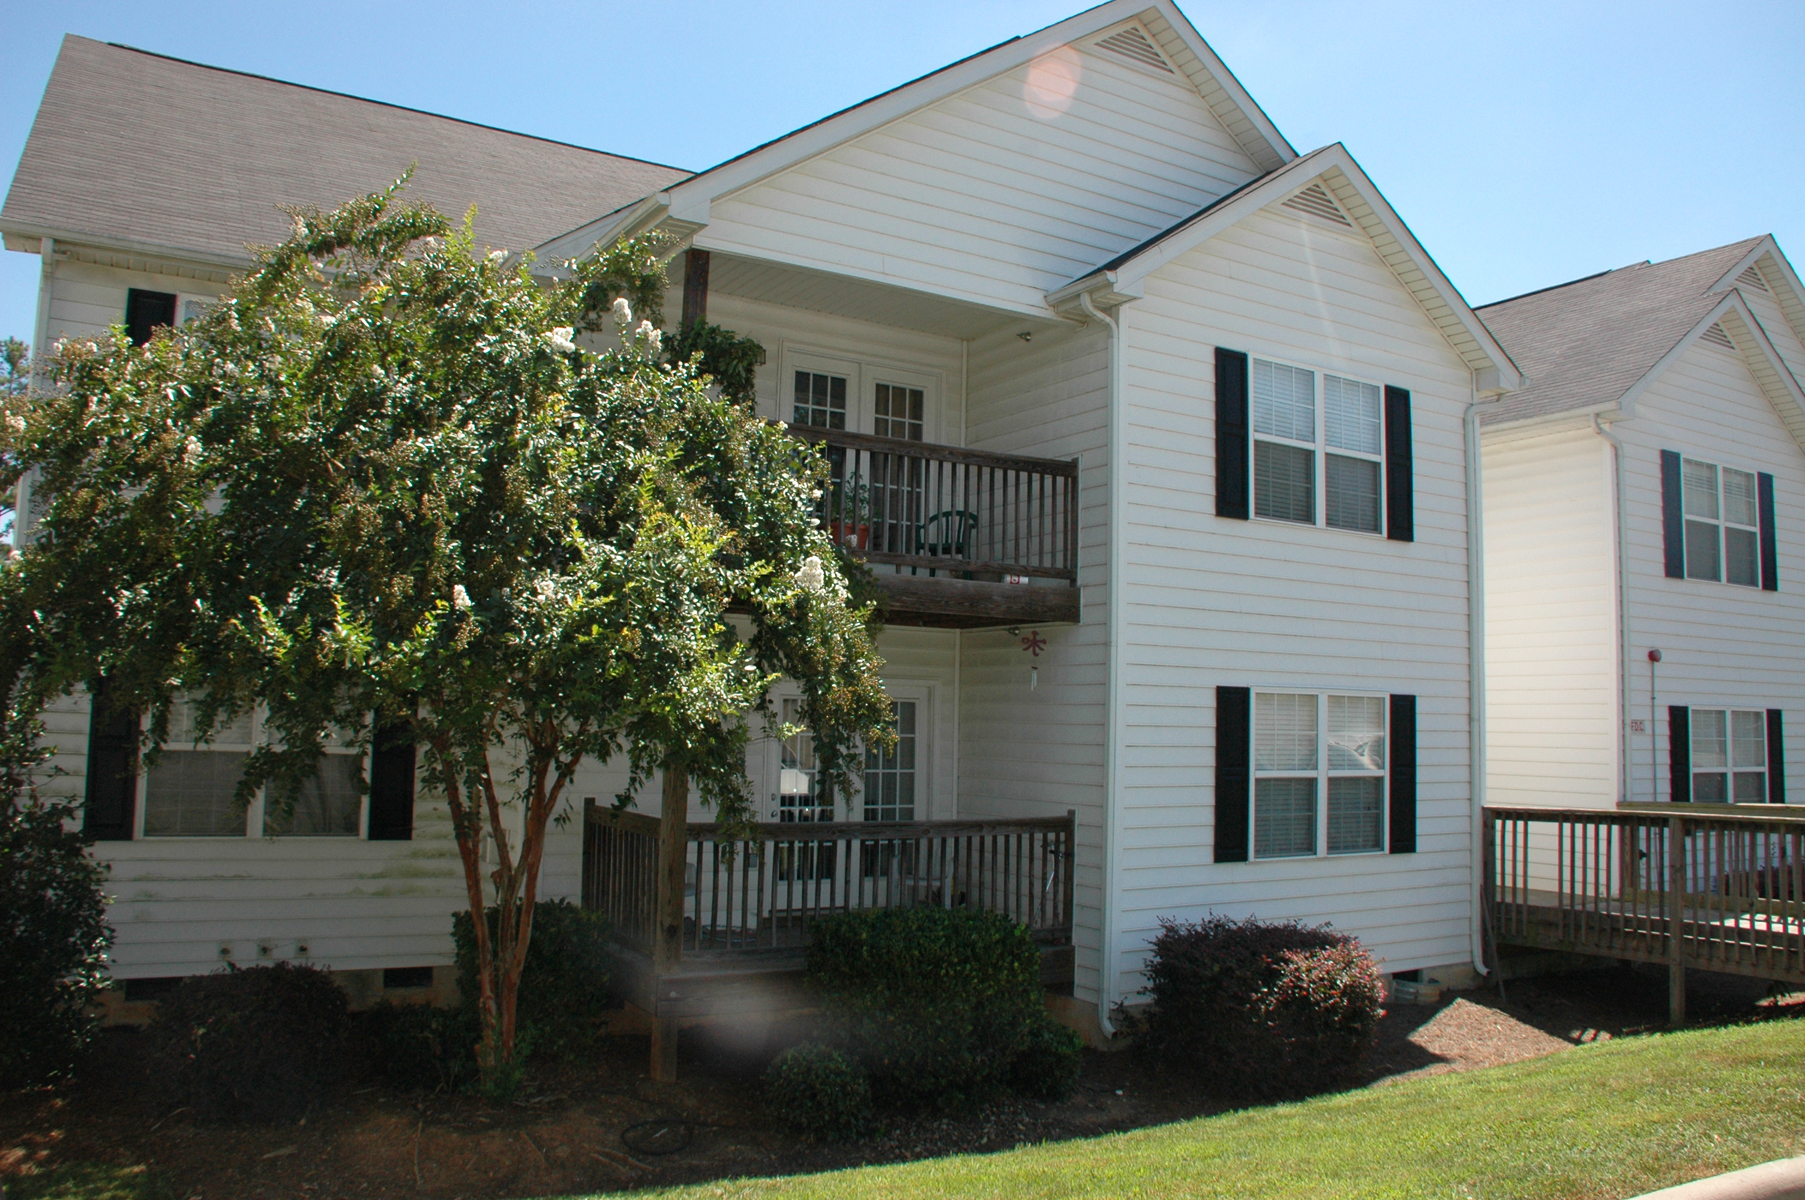 Lakeview Apartments - Fort Mill, SC - The Schirm Firm